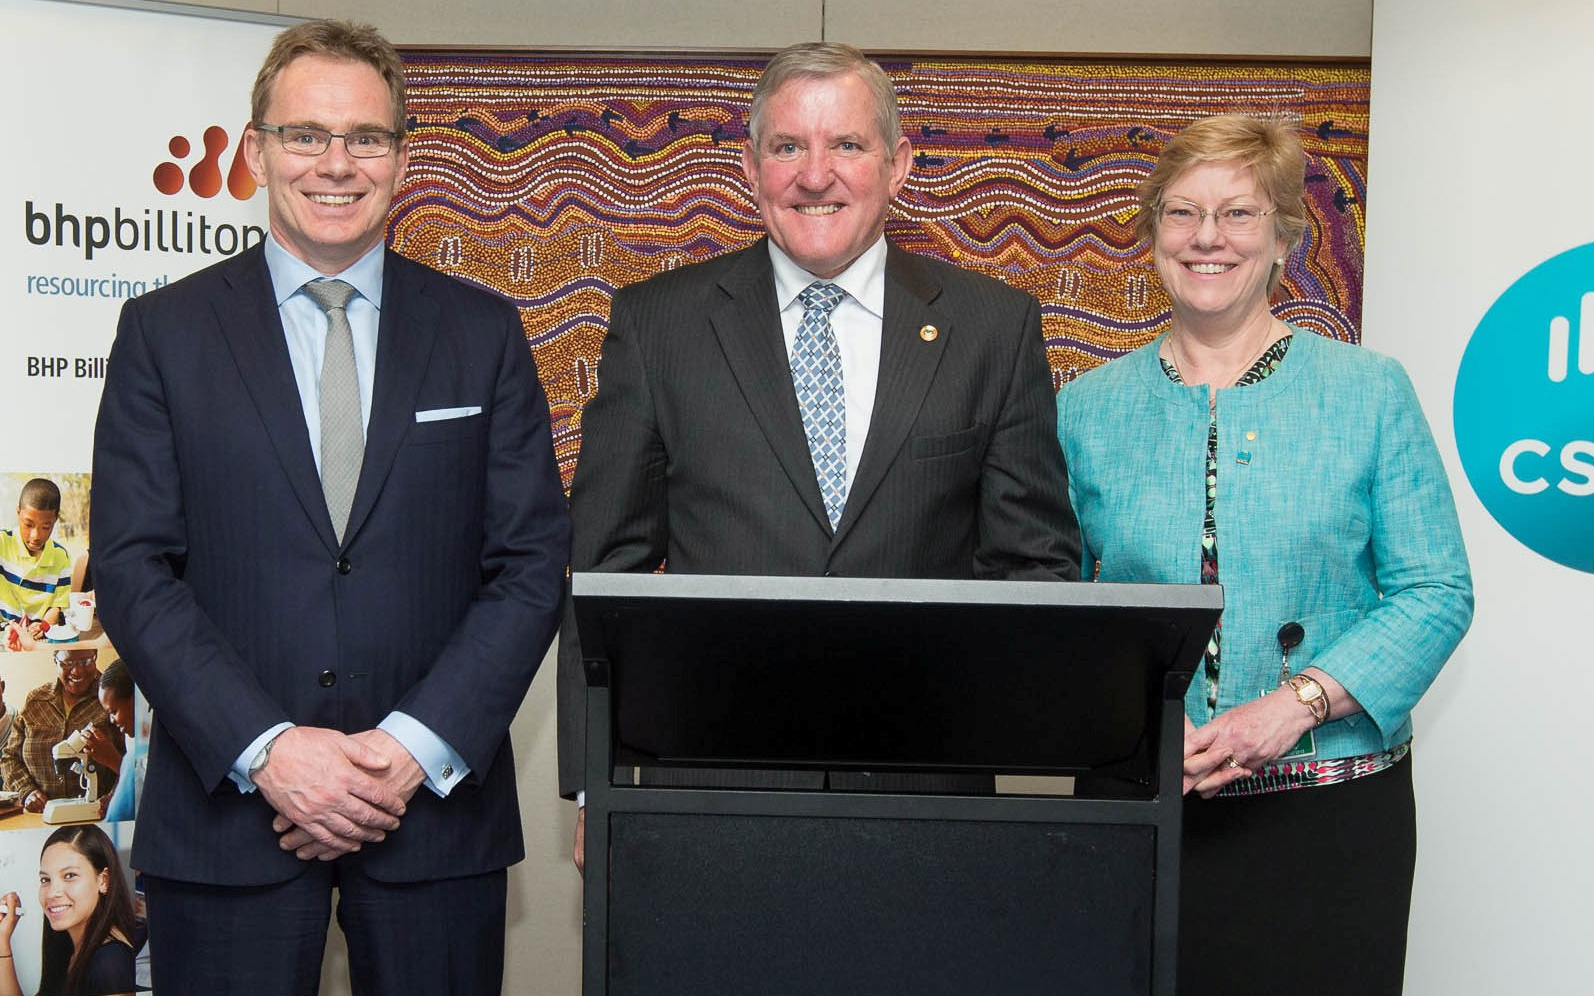 Photo of Mr Andrew McKenzie, BHP Billiton Chief Executive Officer; Hon Ian Mcfarlane MP, Minister for Industry and Dr Megan Clark, Chief Executive CSIRO at the launch event